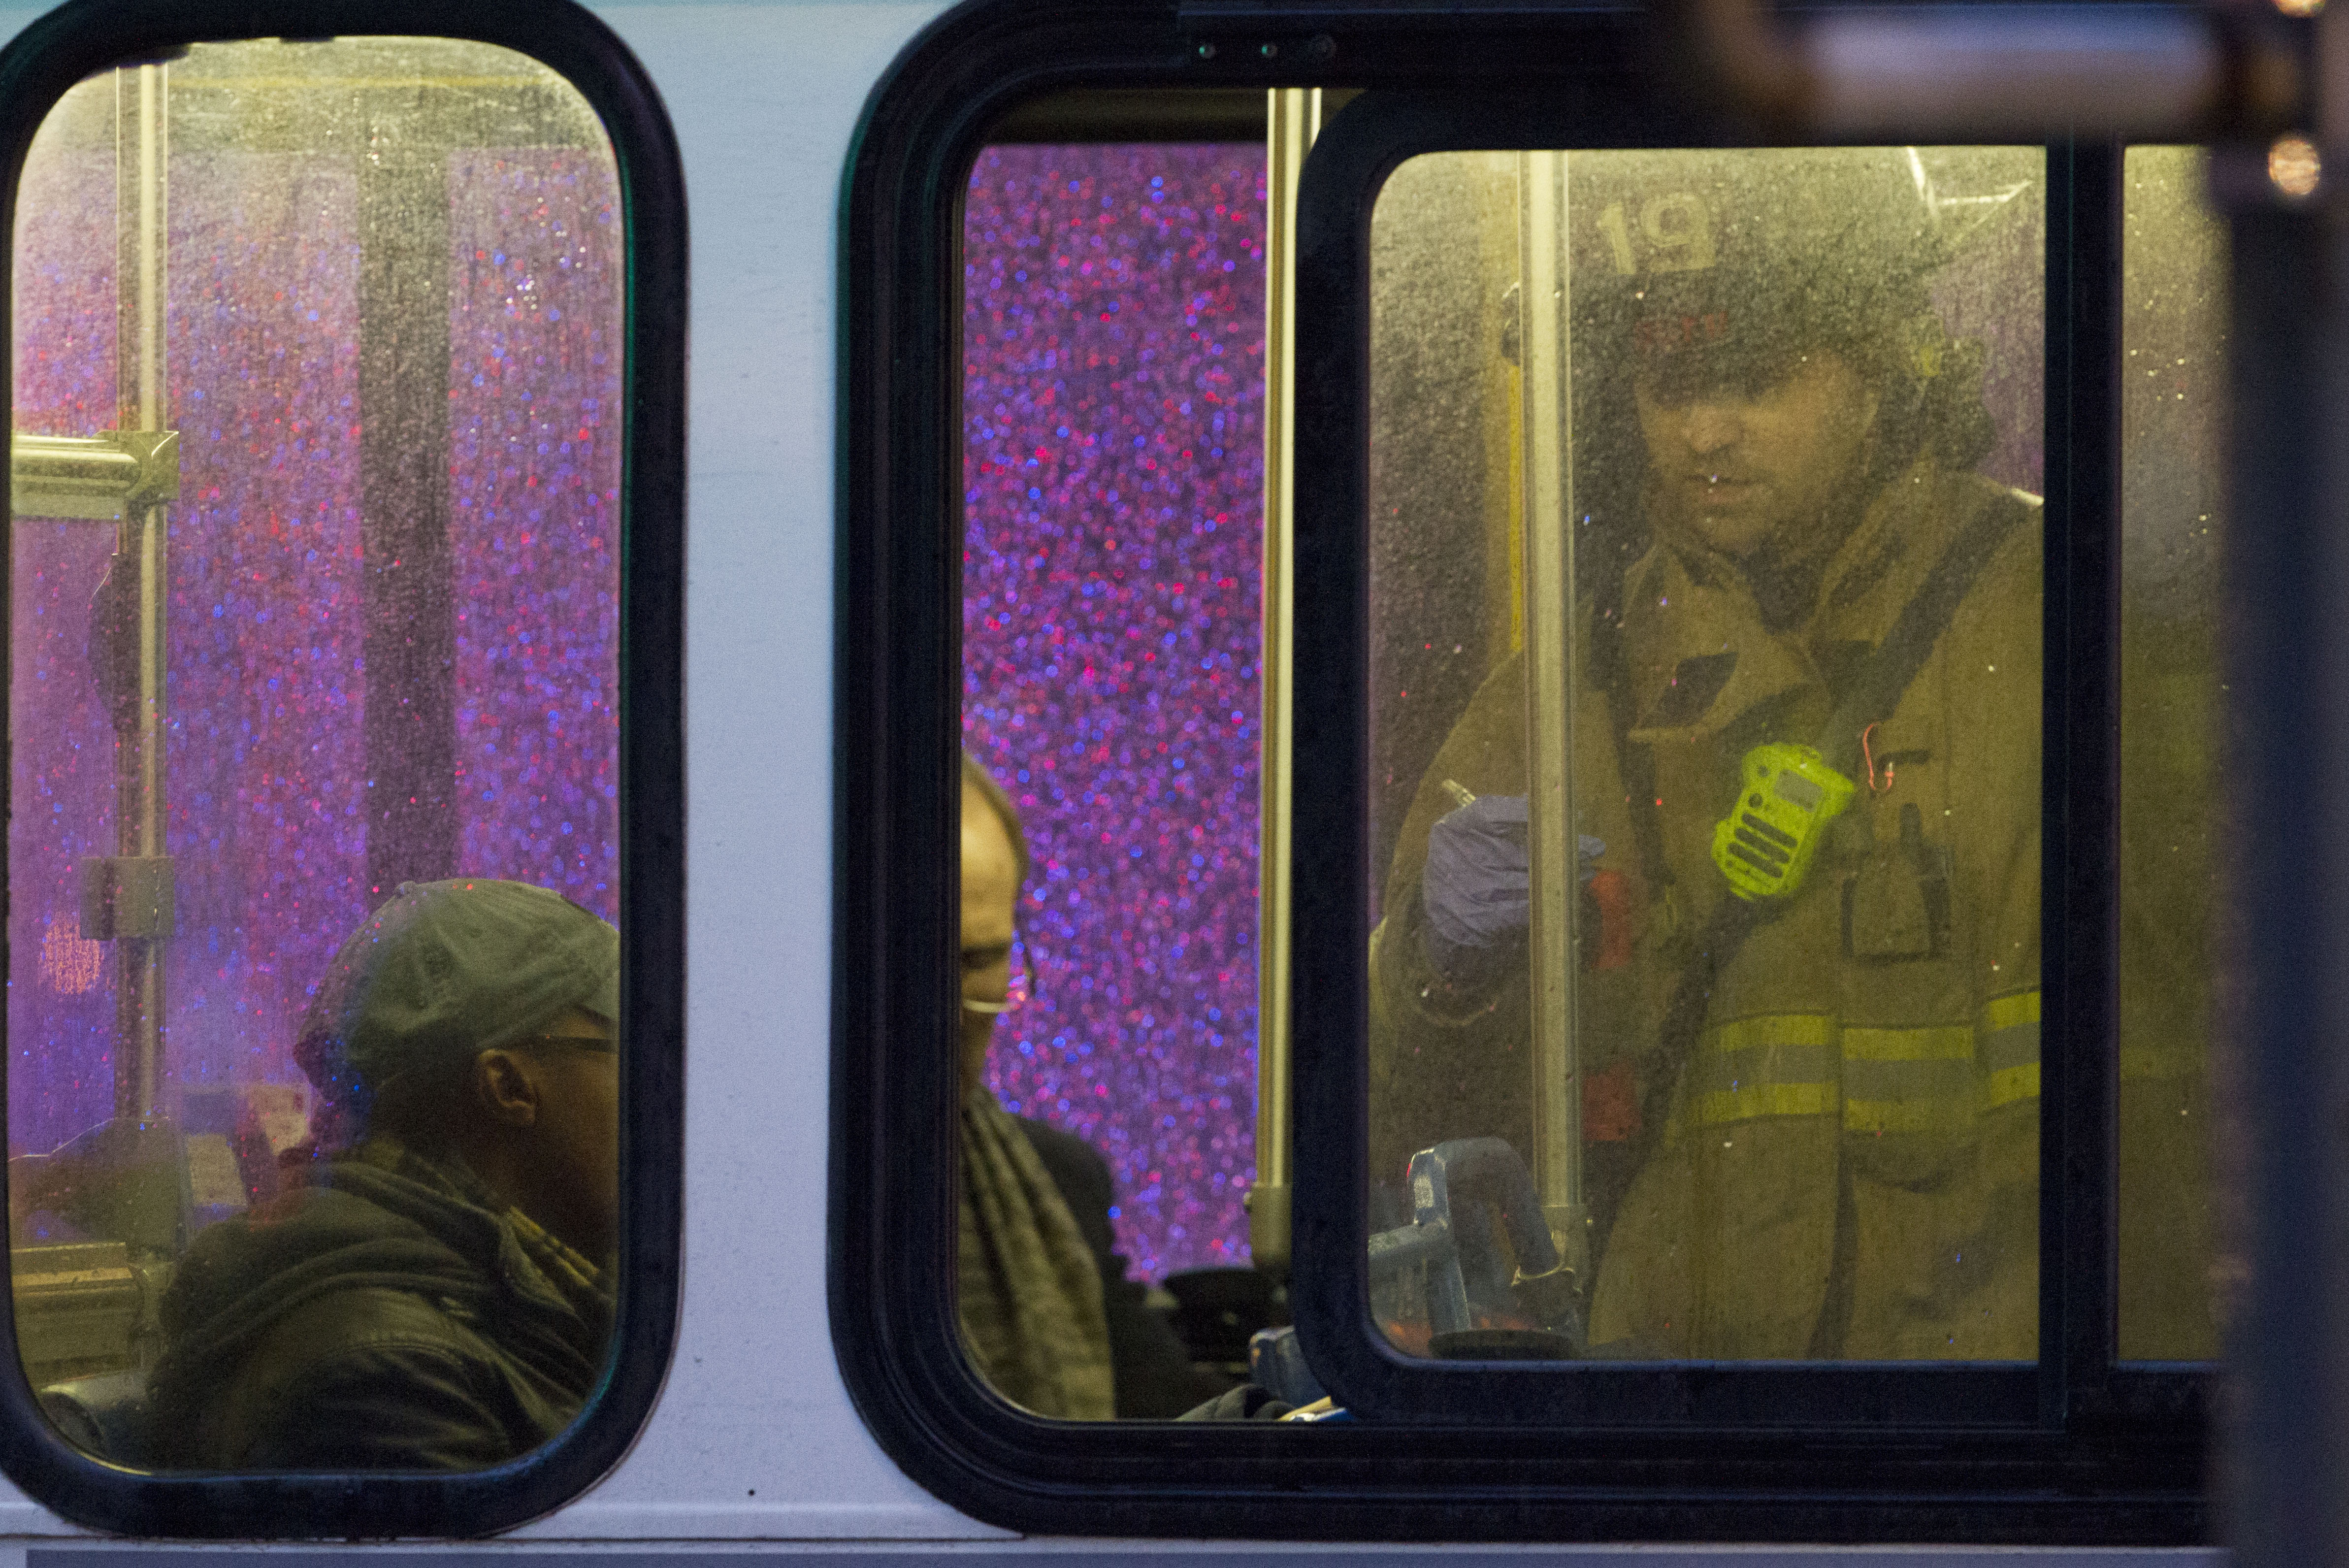 NTSB plans 2-day hearing on fatal Metro smoke incident